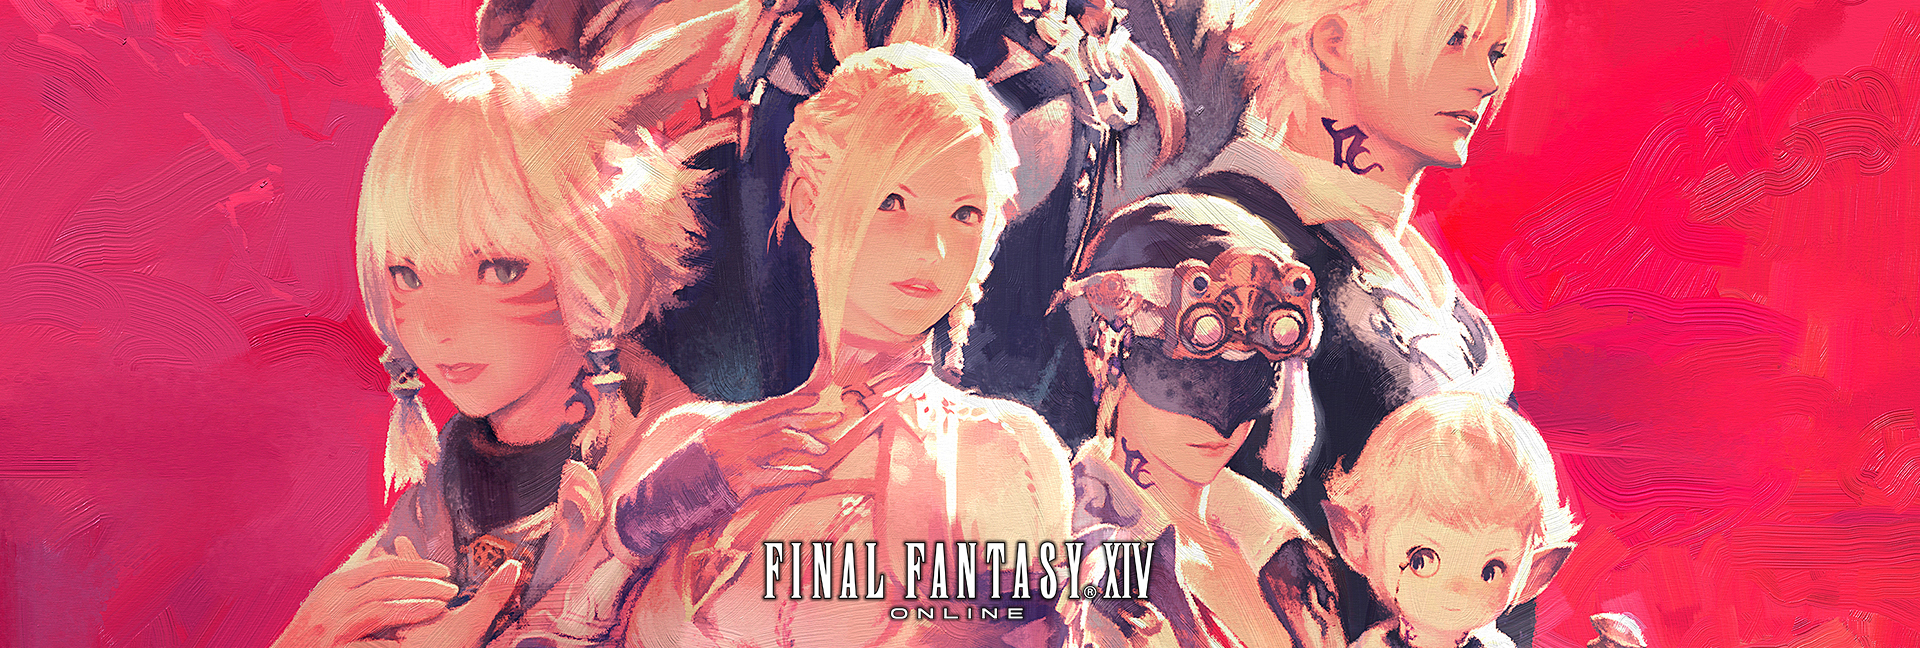 The Last Prophecy Celebrates a Year in Final Fantasy XIV!